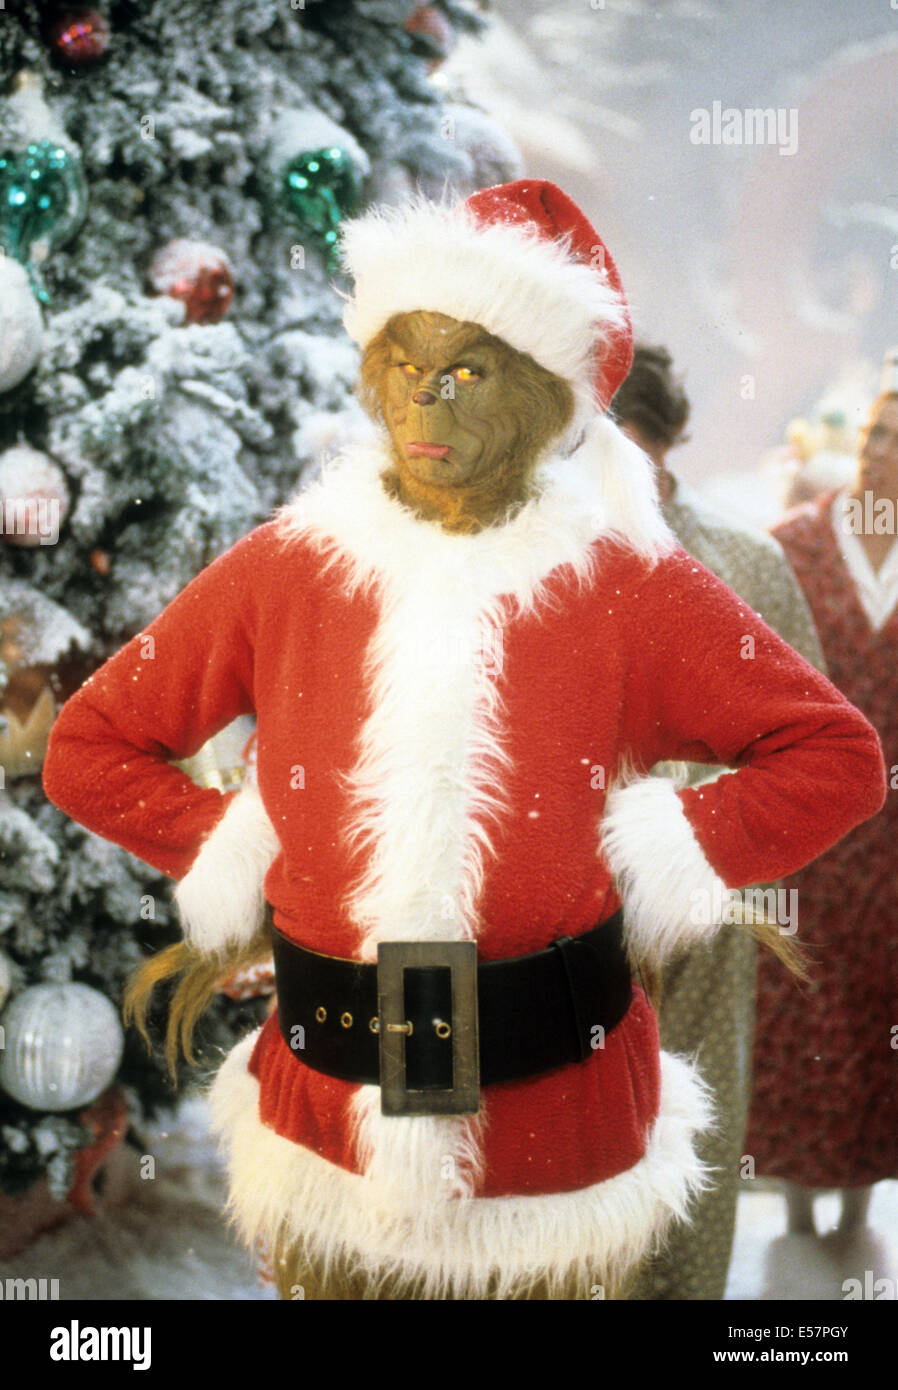 How The Grinch Stole Christmas Movie 2000.How The Grinch Stole Christmas 2000 Universal Pictures Film